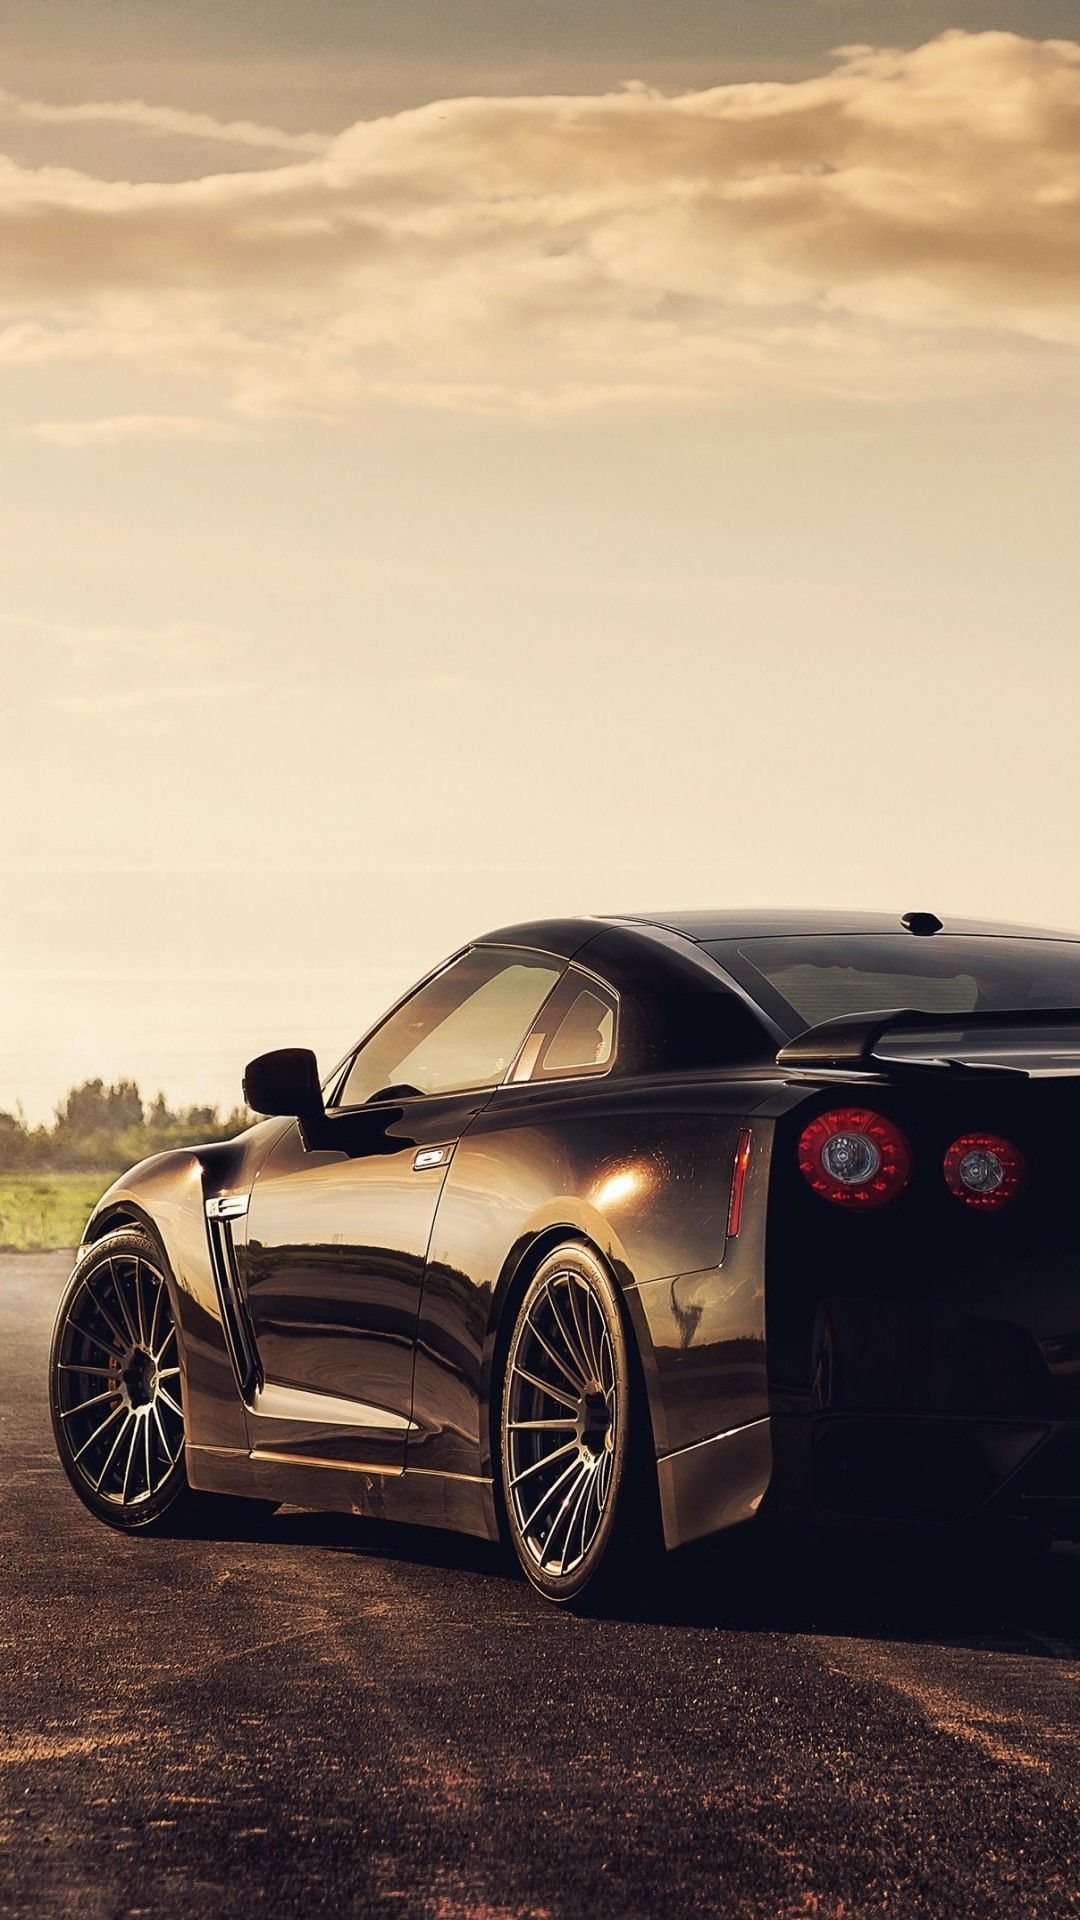 Nissan Gtr Iphone 6 Wallpaper 79 Images Nissangtr Nissan Gtr Iphone 6 Wallpaper 79 Images Nissangtr Nissan Gtr Nissan Gtr Skyline Gtr Iphone Wallpaper